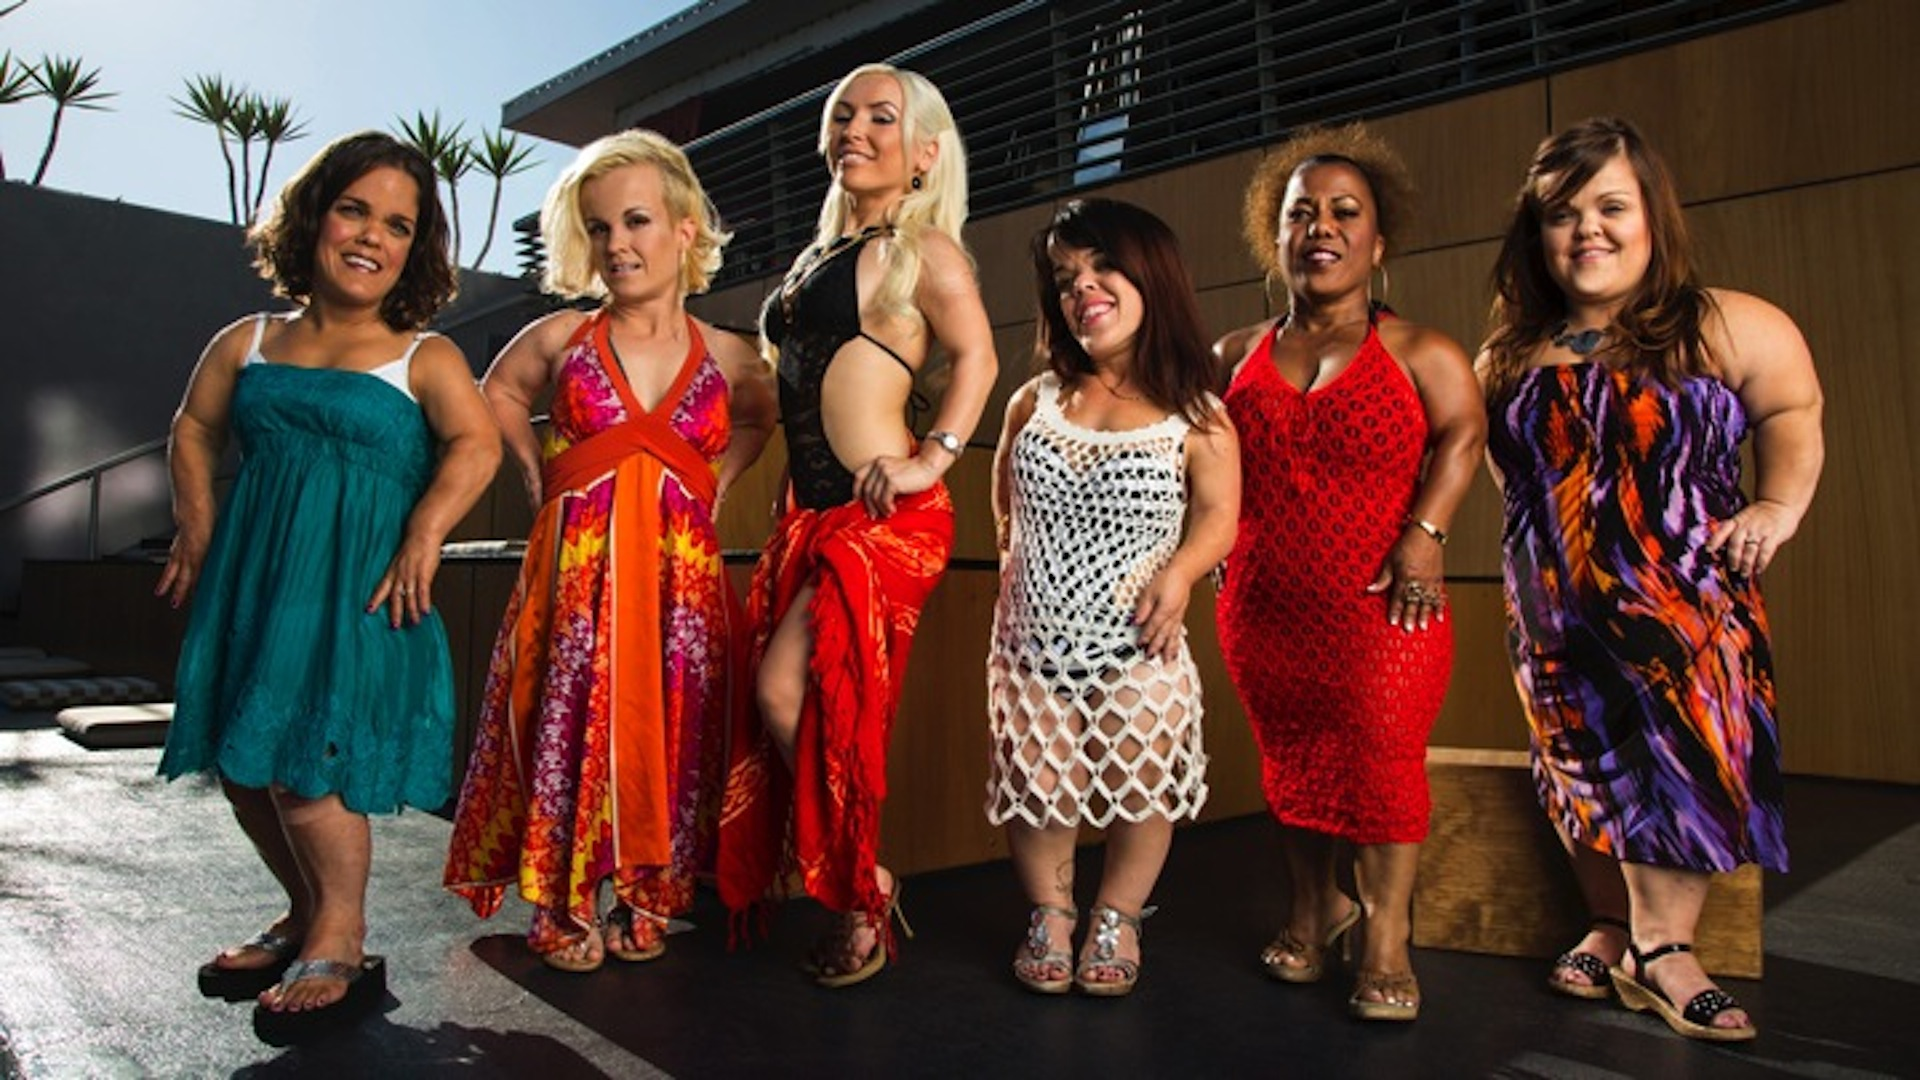 Little Women: LA comes to Lifetime tonight